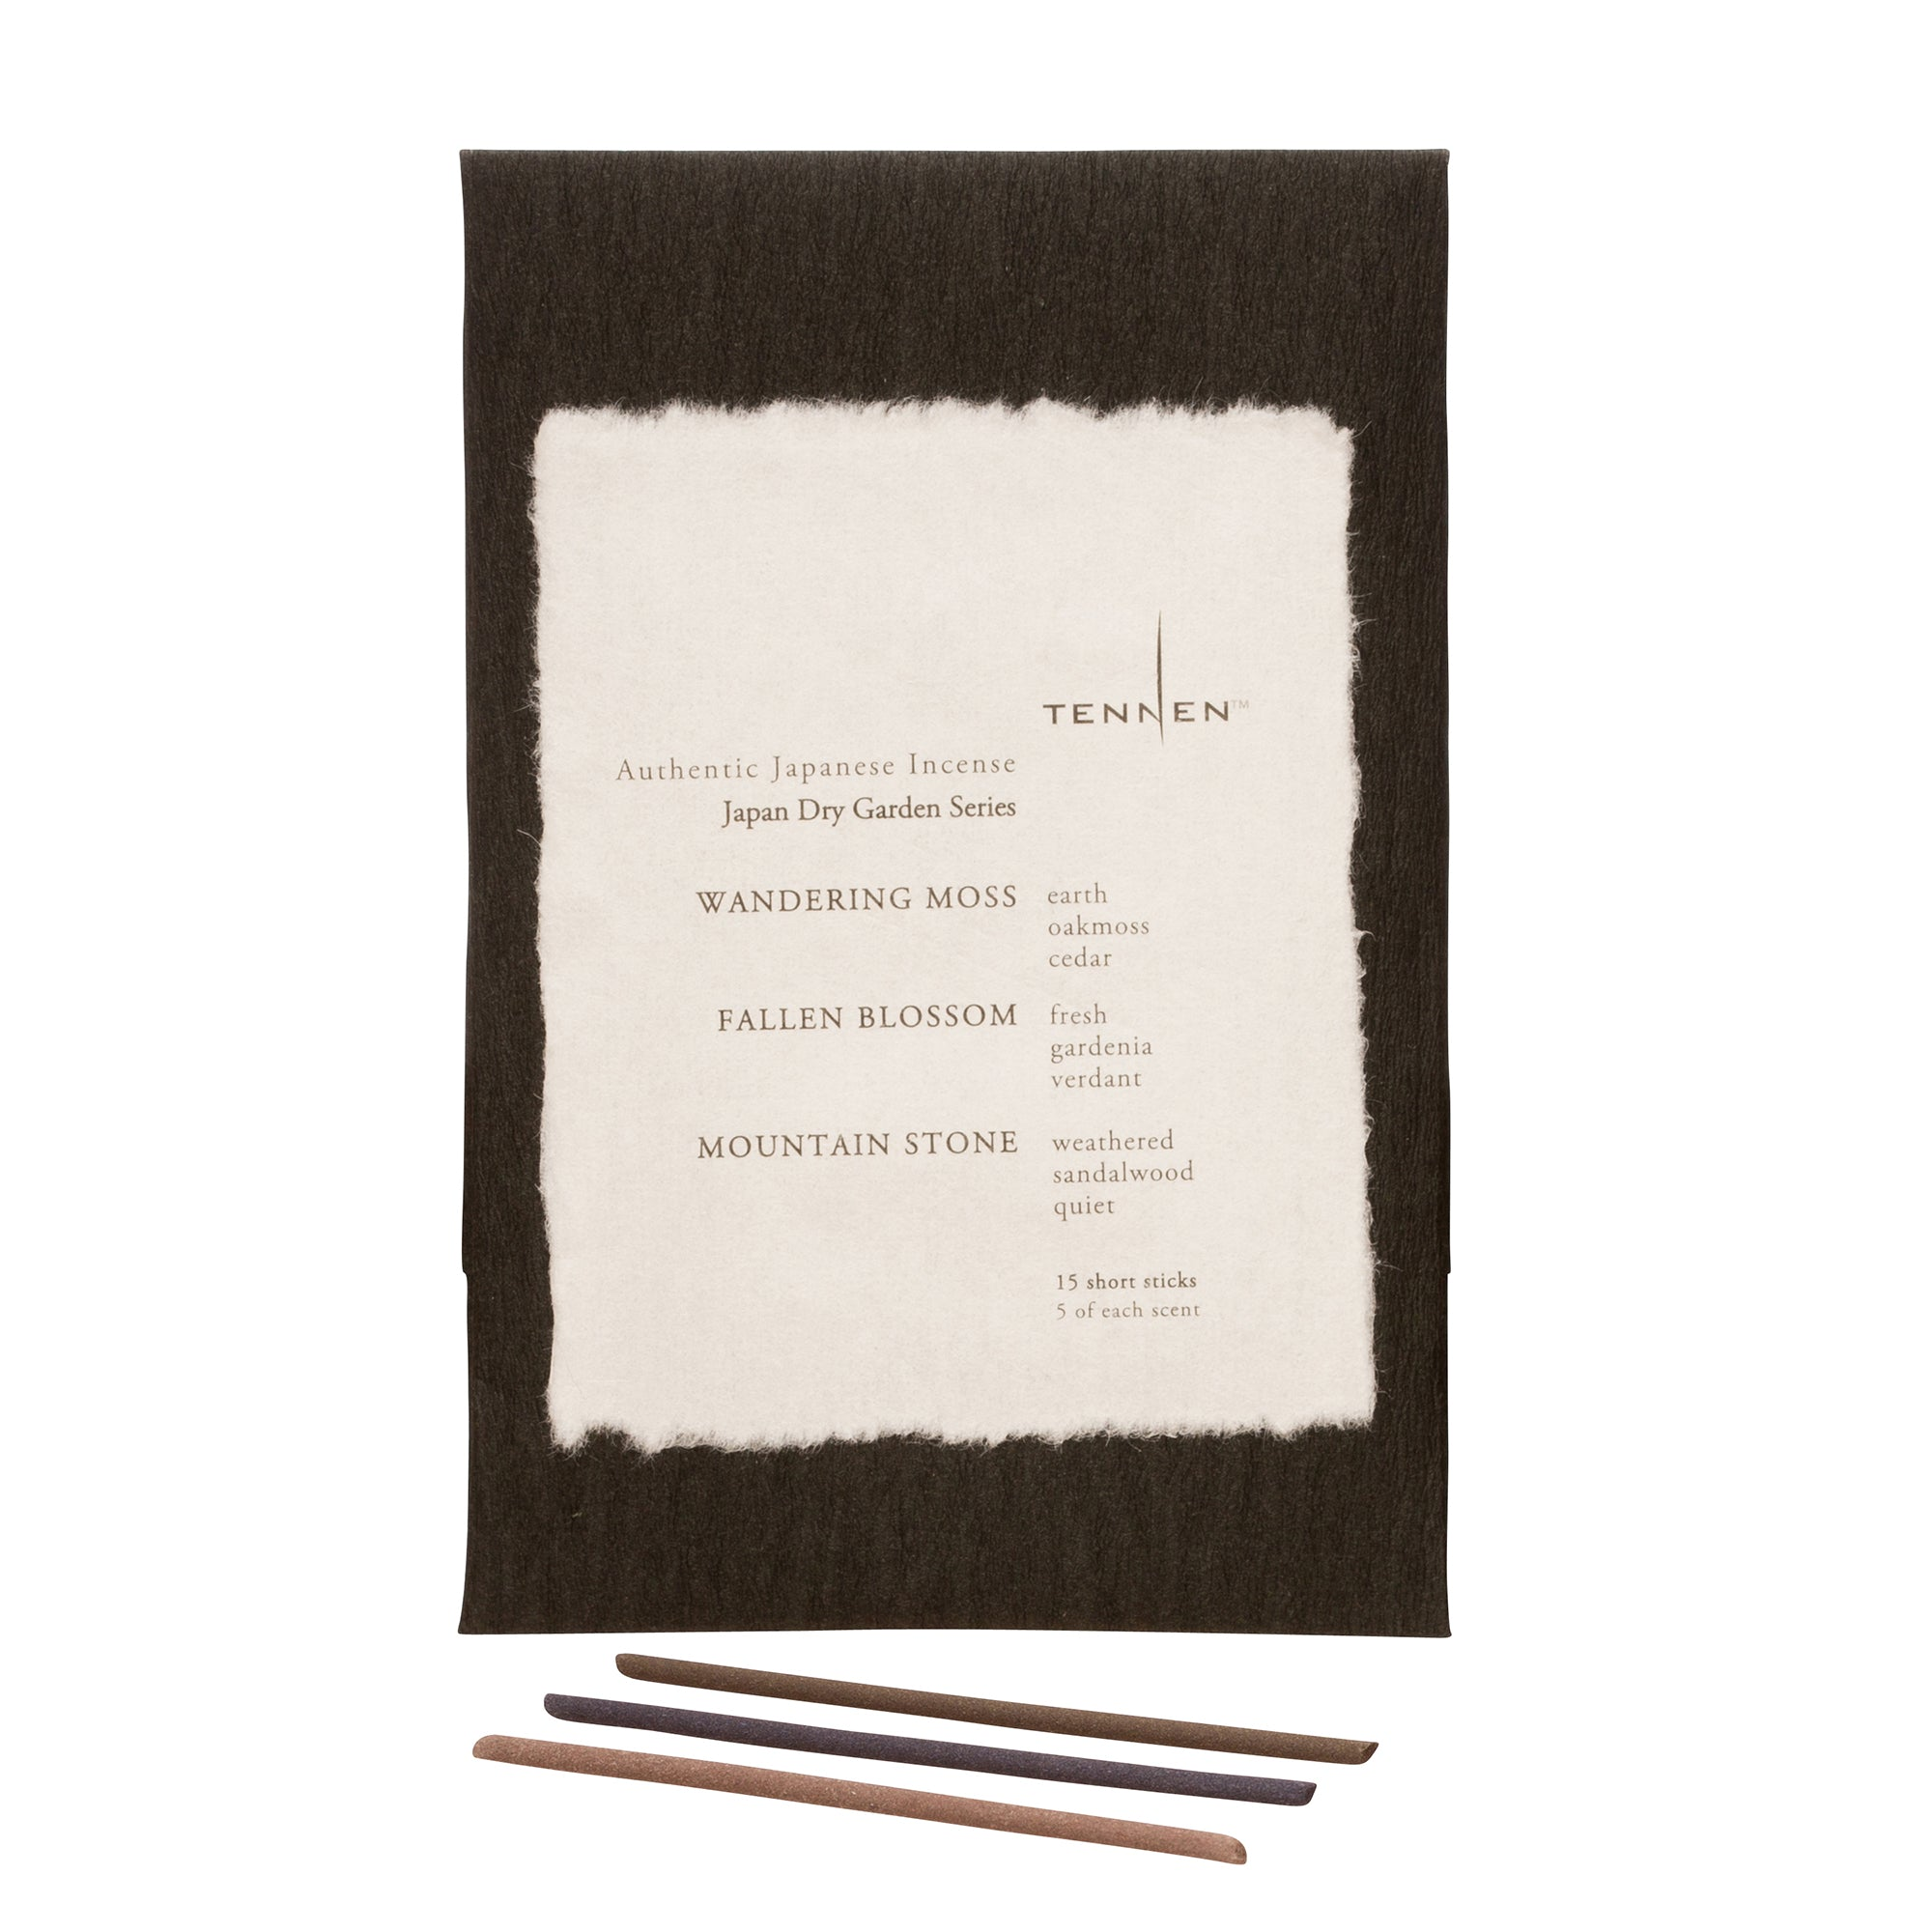 Japan Dry Garden Mixed Incense Pack by Tennen for Broken English Jewelry